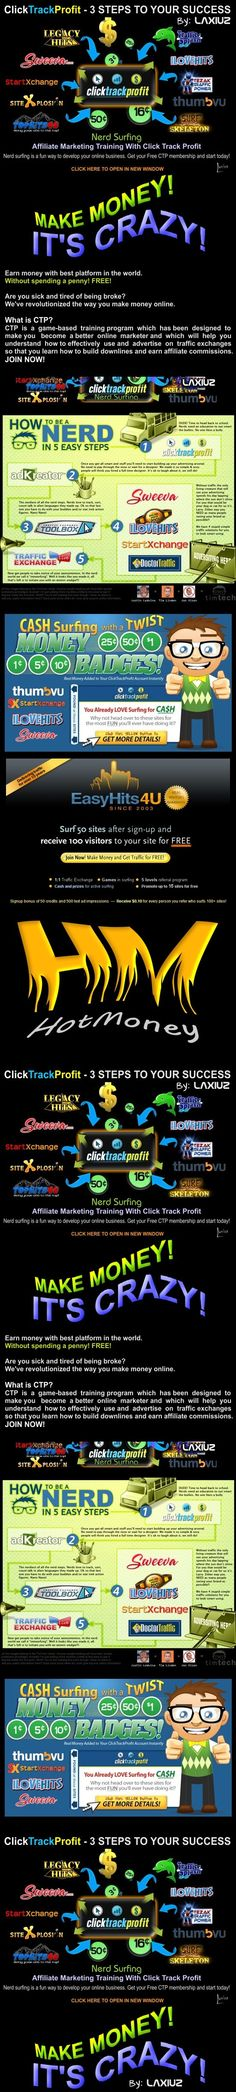 Earn money with best platform in the world. **  Without spending a penny! FREE! JOIN NOW!  Are you sick and tired of being broke? We've revolutionized the way you make money online. JOIN NOW! http://www.easyhits4u.com/customsplash/54708